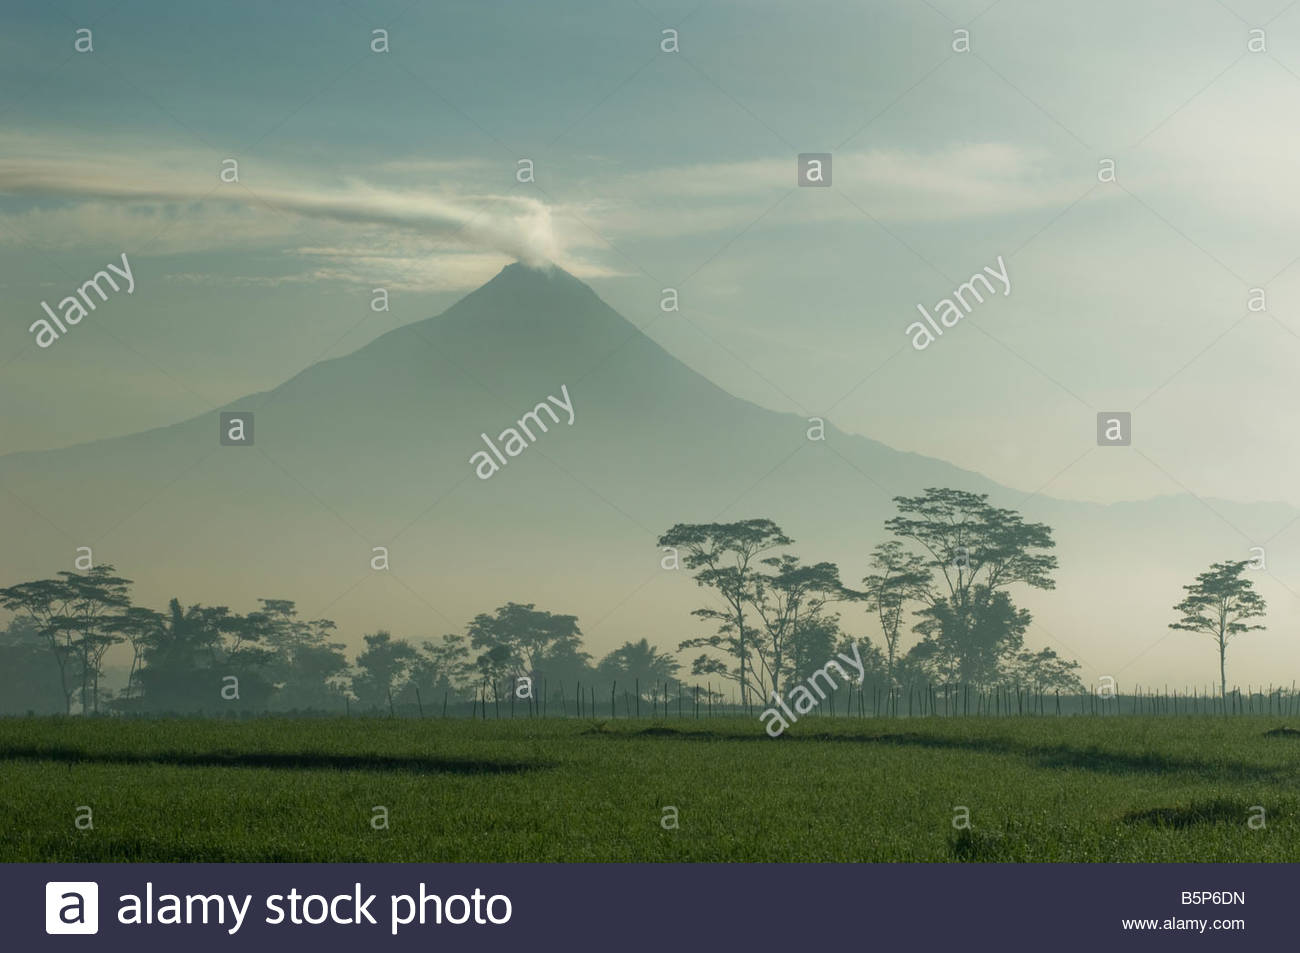 Mount Merapi view in front of a paddy field in Magelang the nearest town to Borobudur - Stock Image